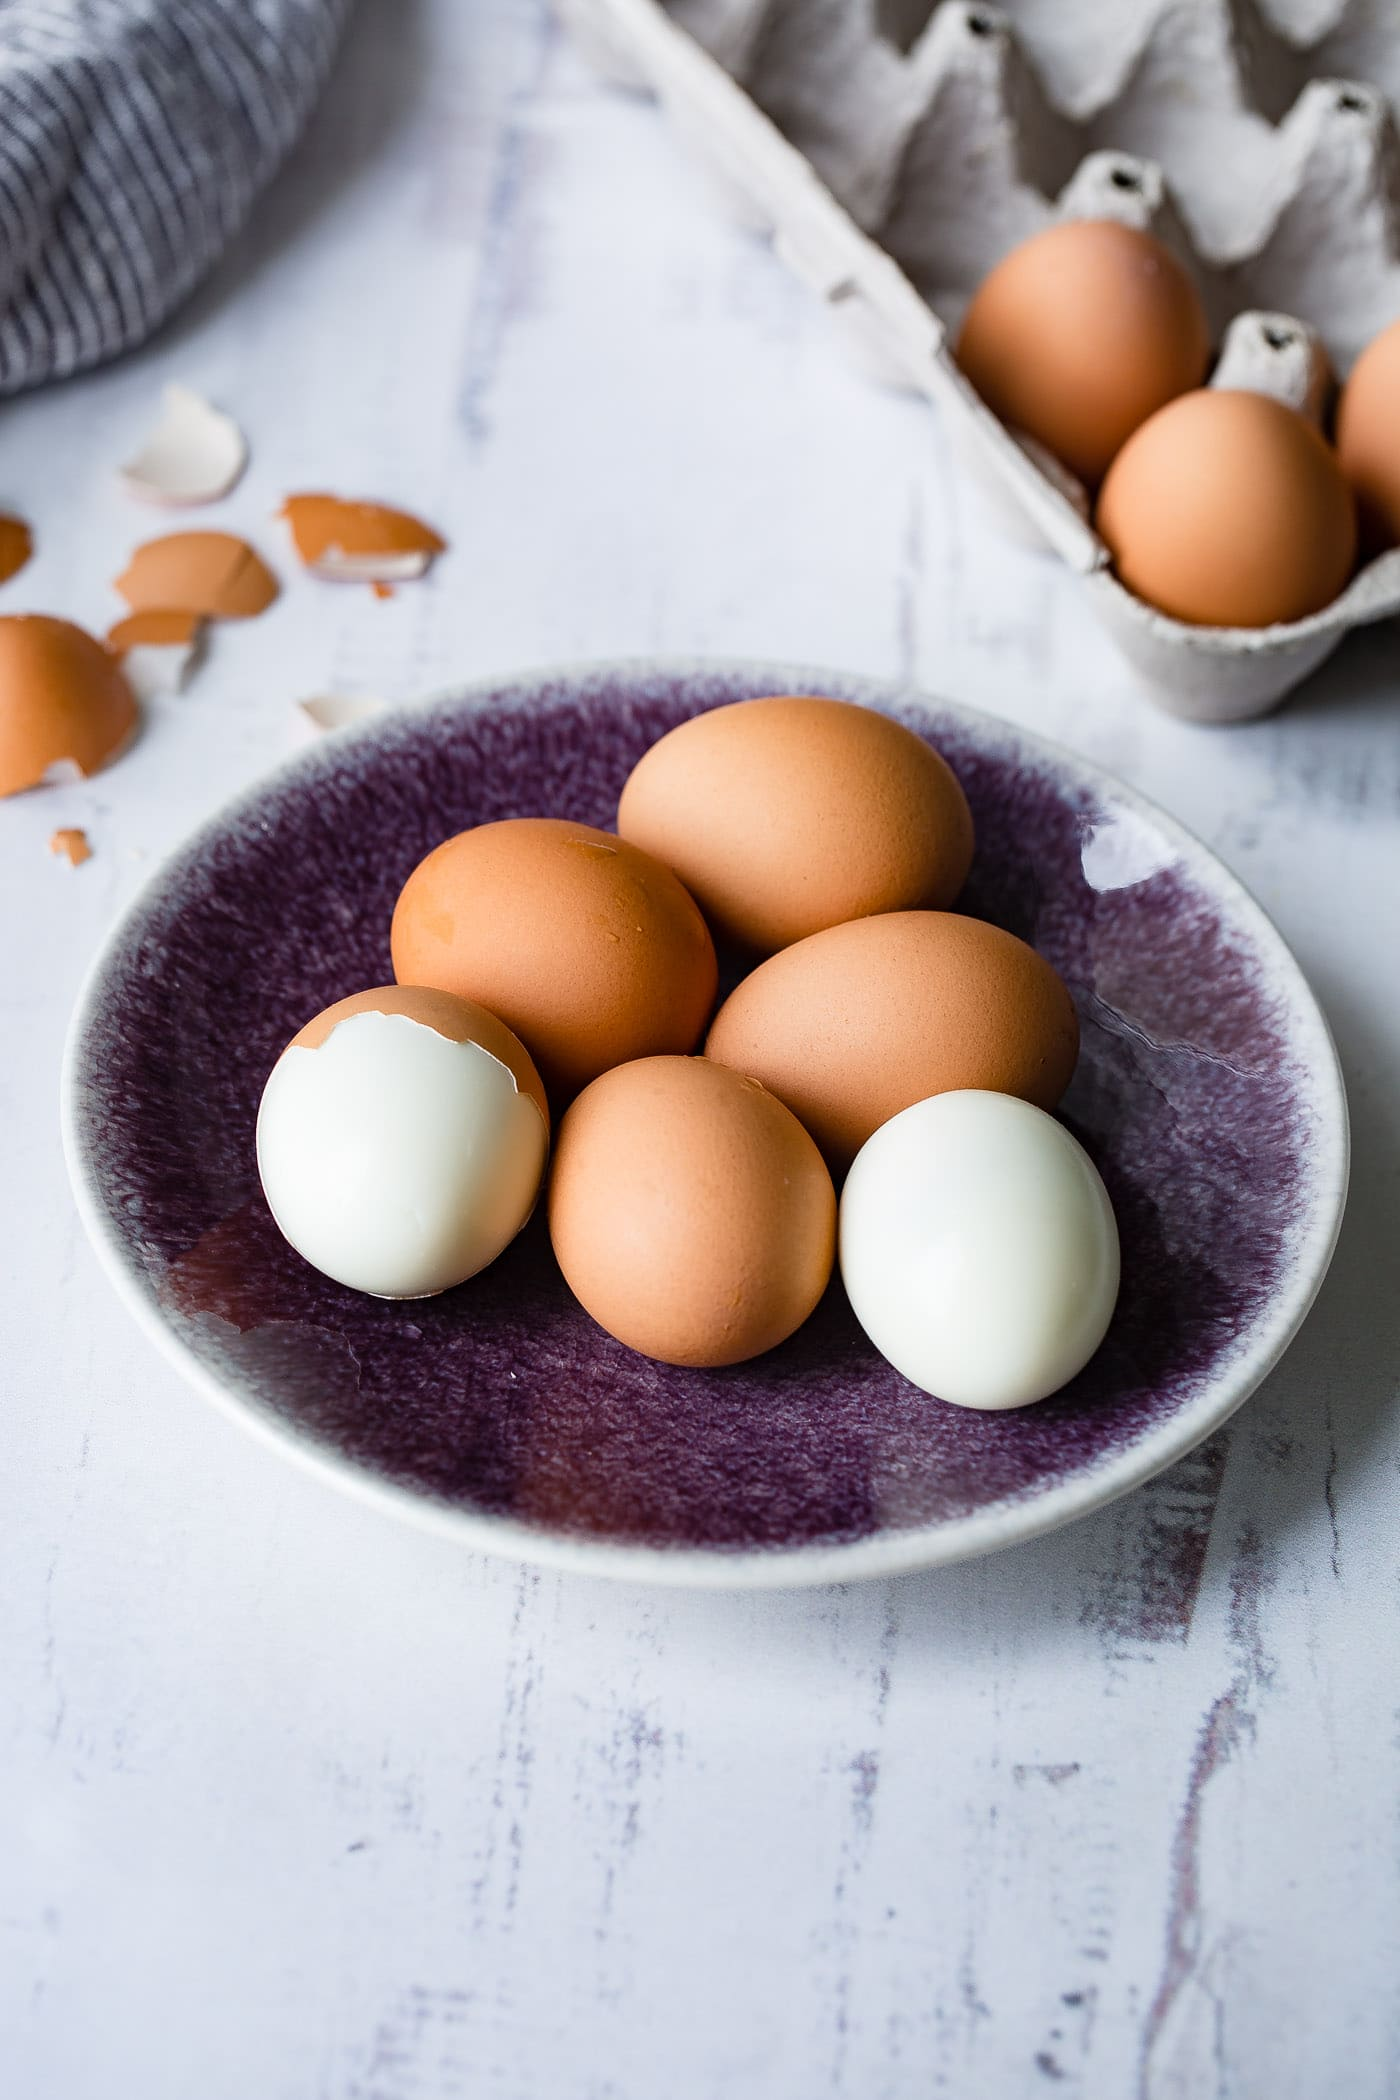 A plate with 6 brown hard boiled eggs. One has been peeled and one is partially peeled. There are brown egg shell and a carton of eggs in the background.